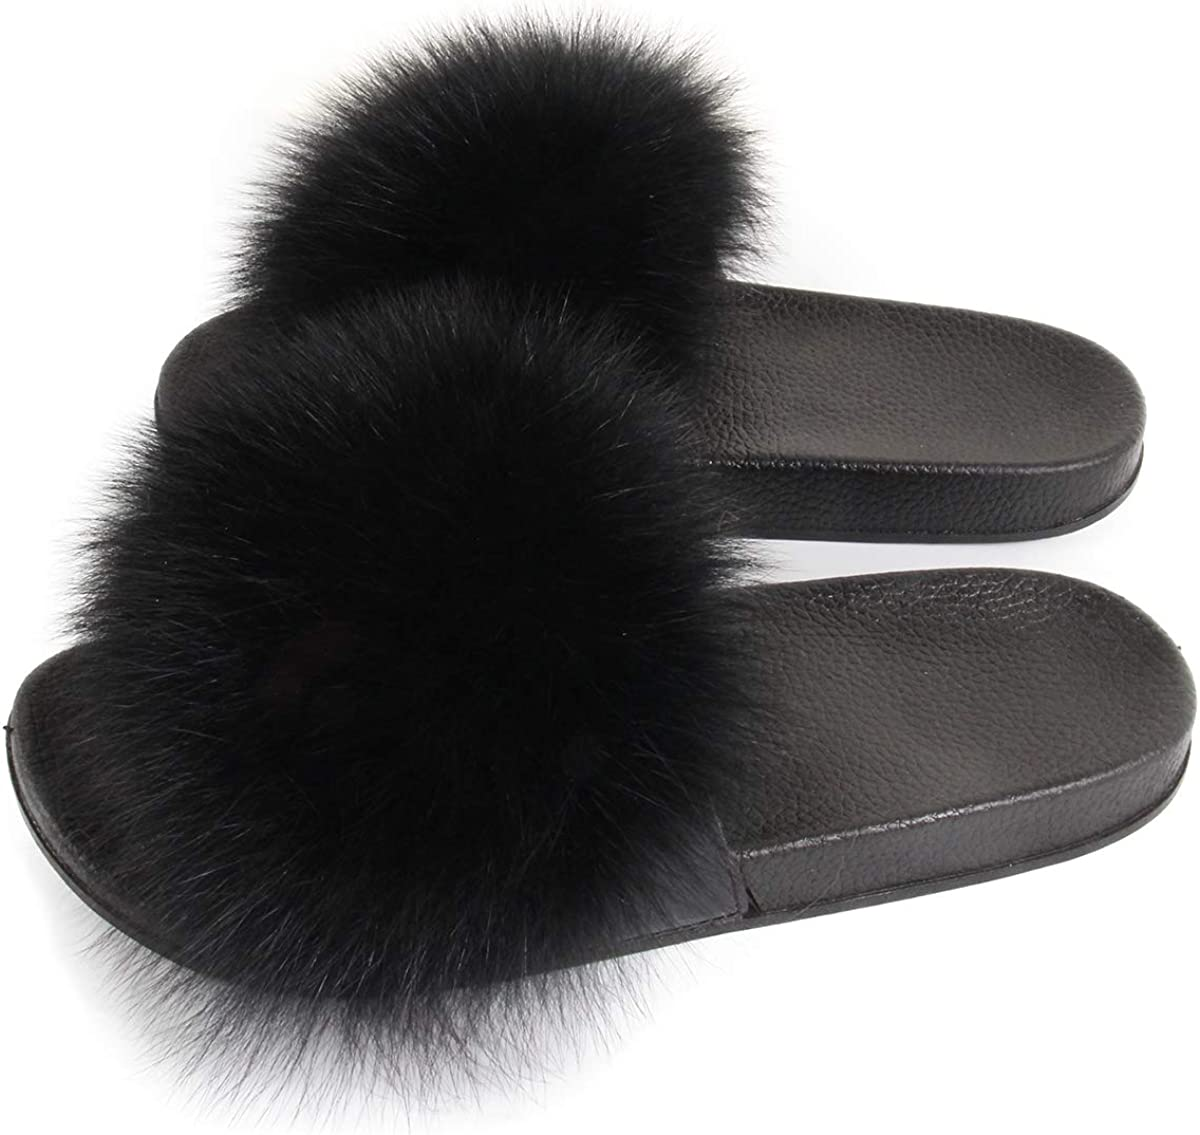 Women Luxury Real Fox Fur Slippers Slides Indoor Outdoor Flat Soles Soft Spring Summer Shoes Woman Flip Flops